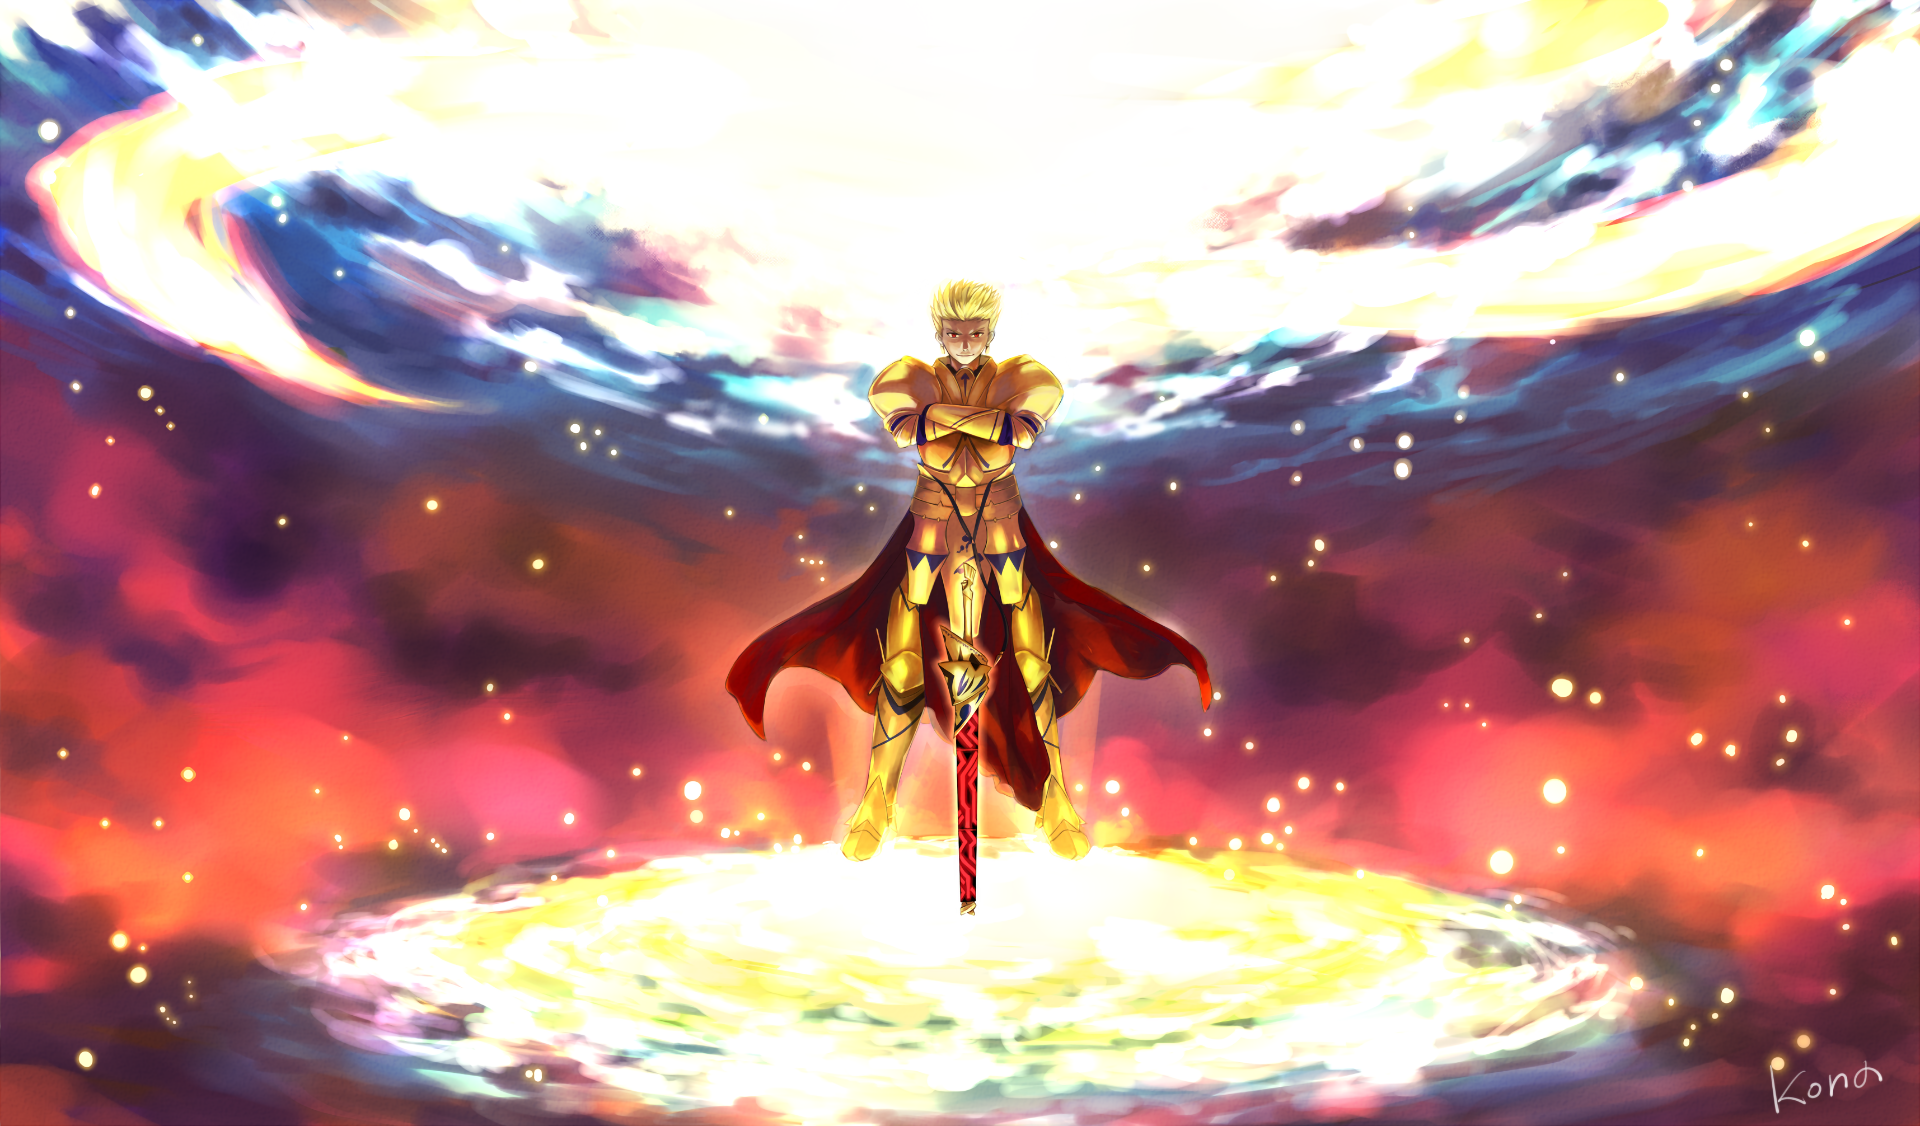 115 Gilgamesh Fate Series Hd Wallpapers Background Images